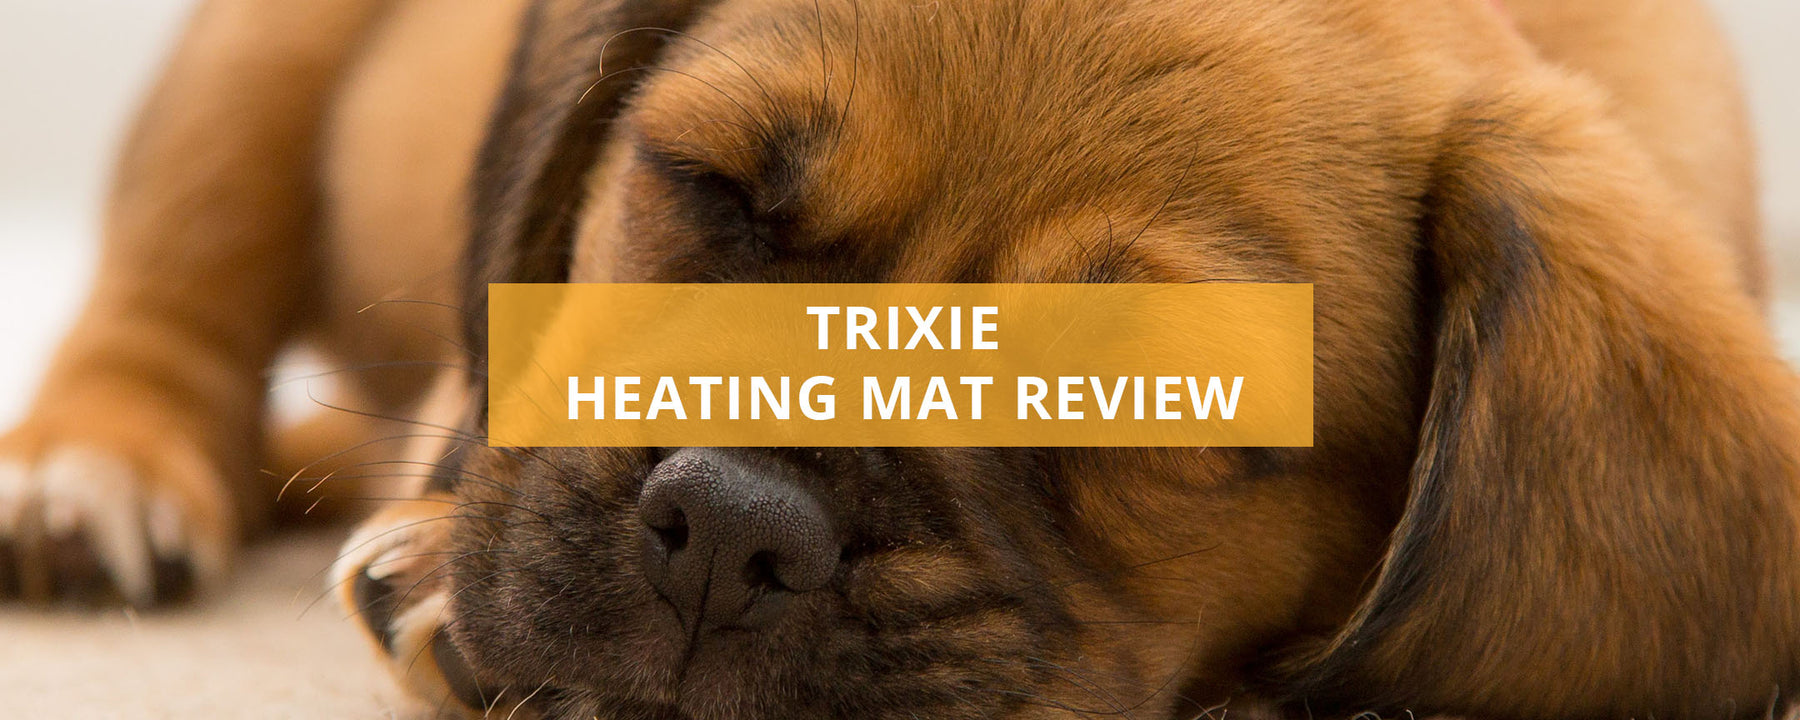 Trixie Heating Mat Review